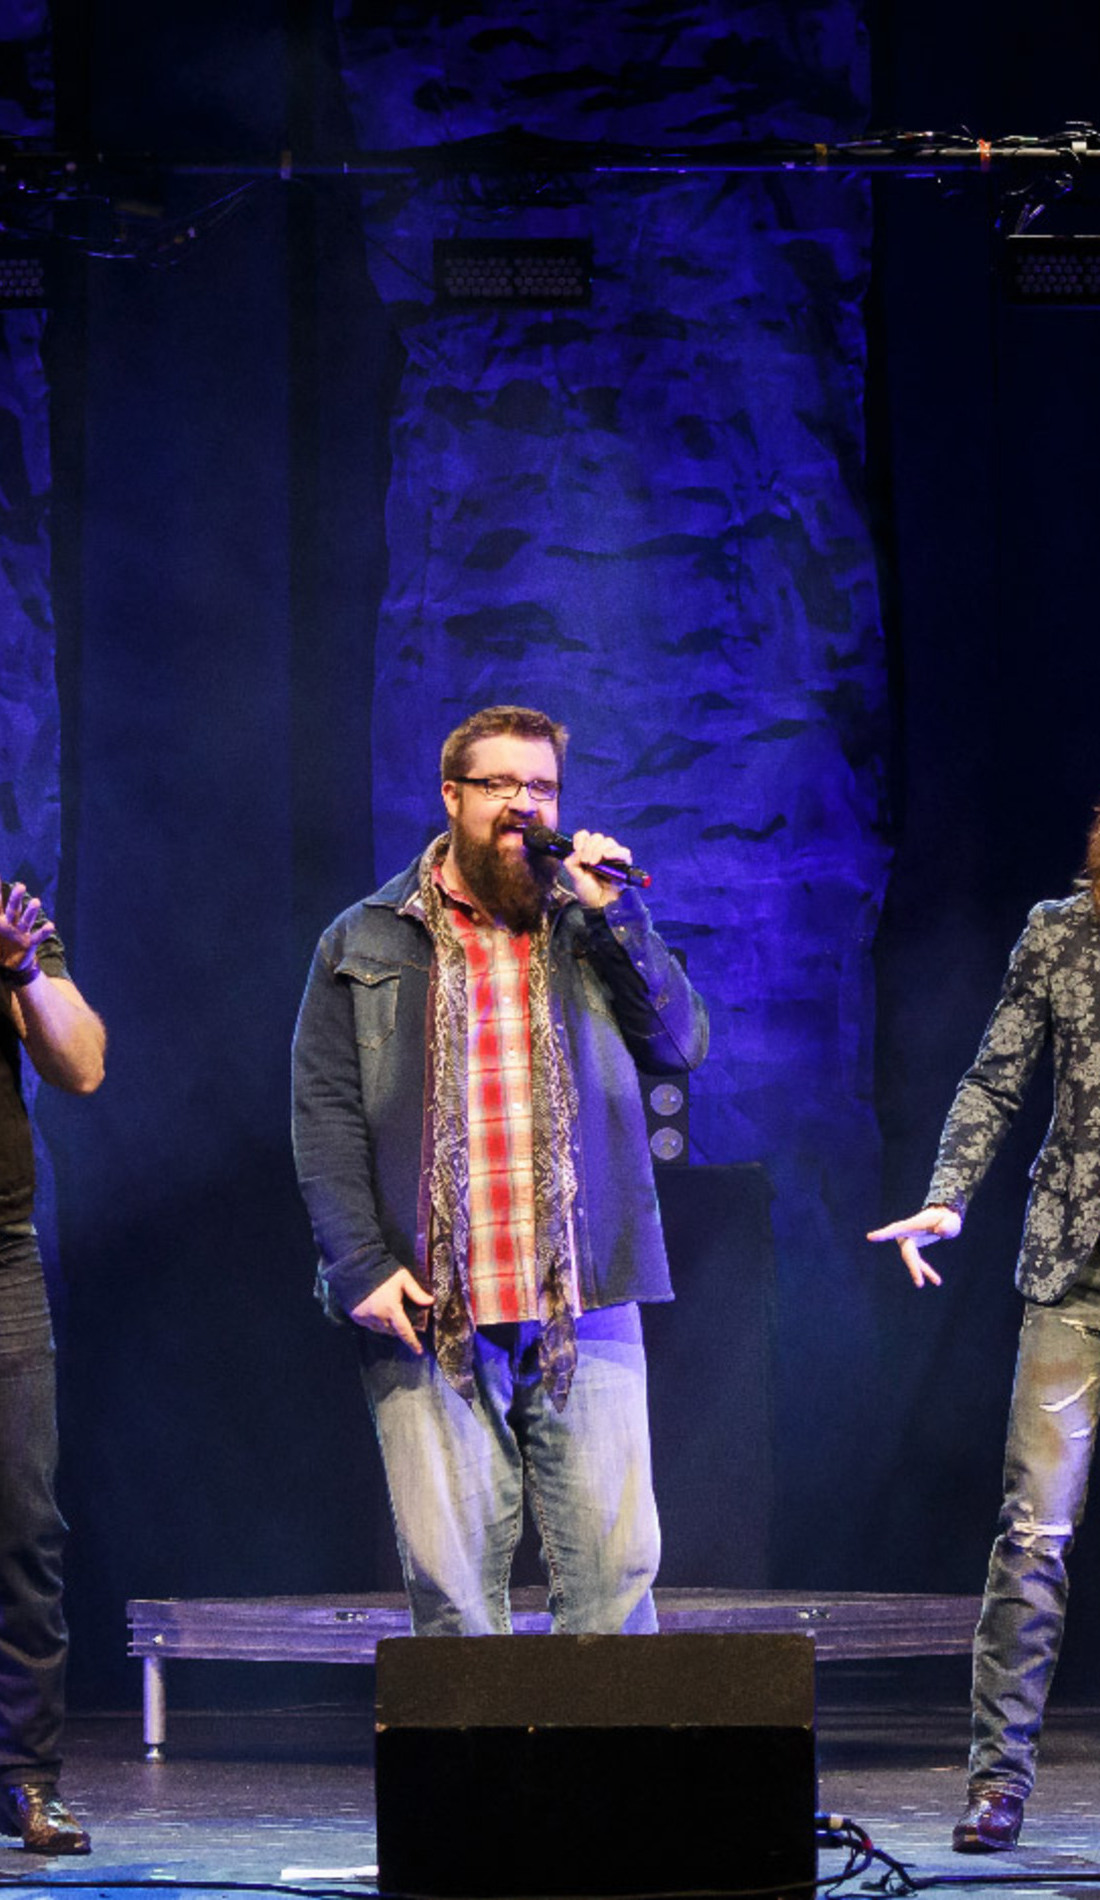 A Home Free Vocal Band live event